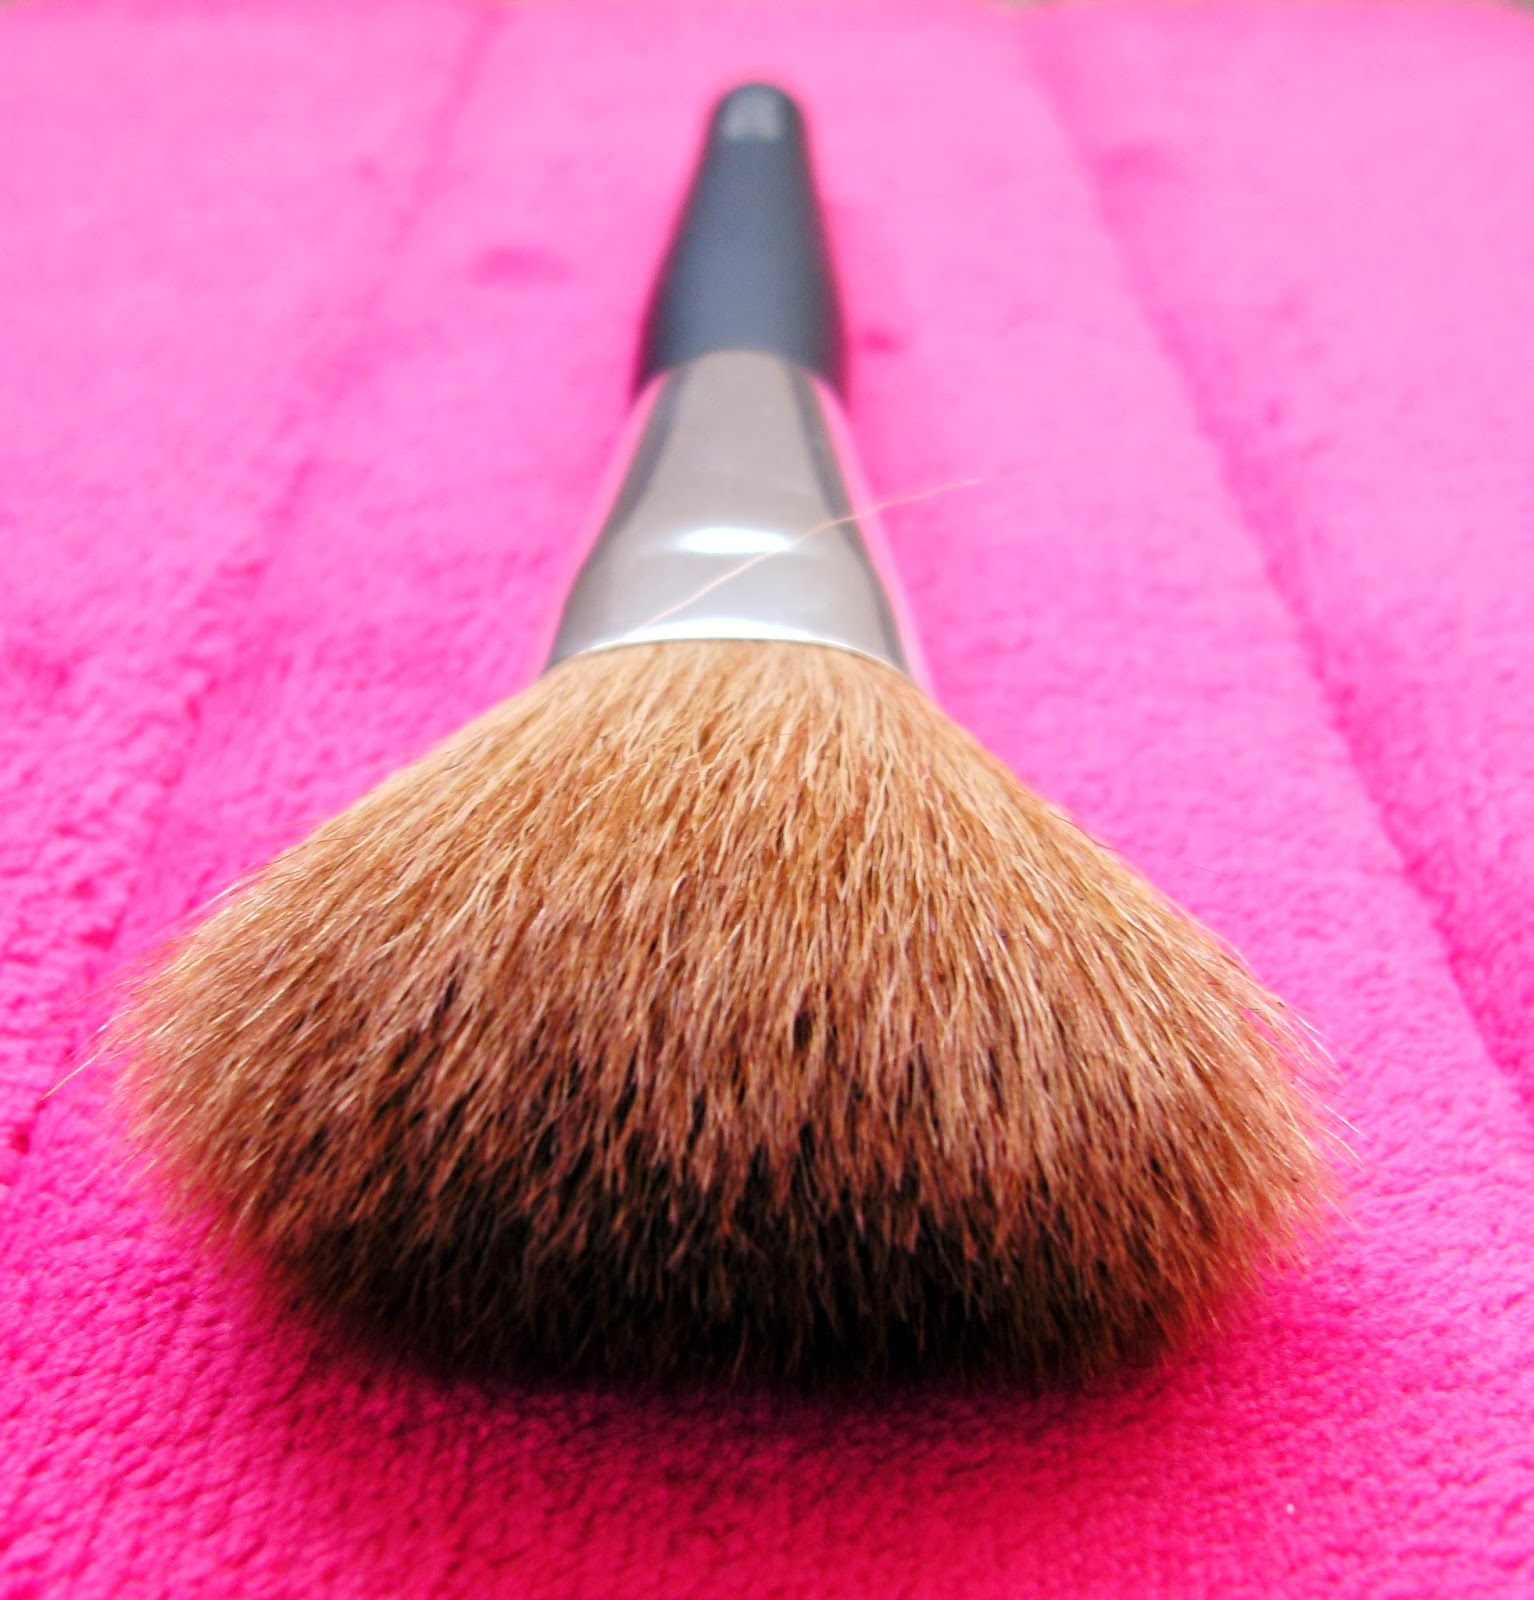 Bargain Barbara Daly Powder Makeup Brush from Tesco